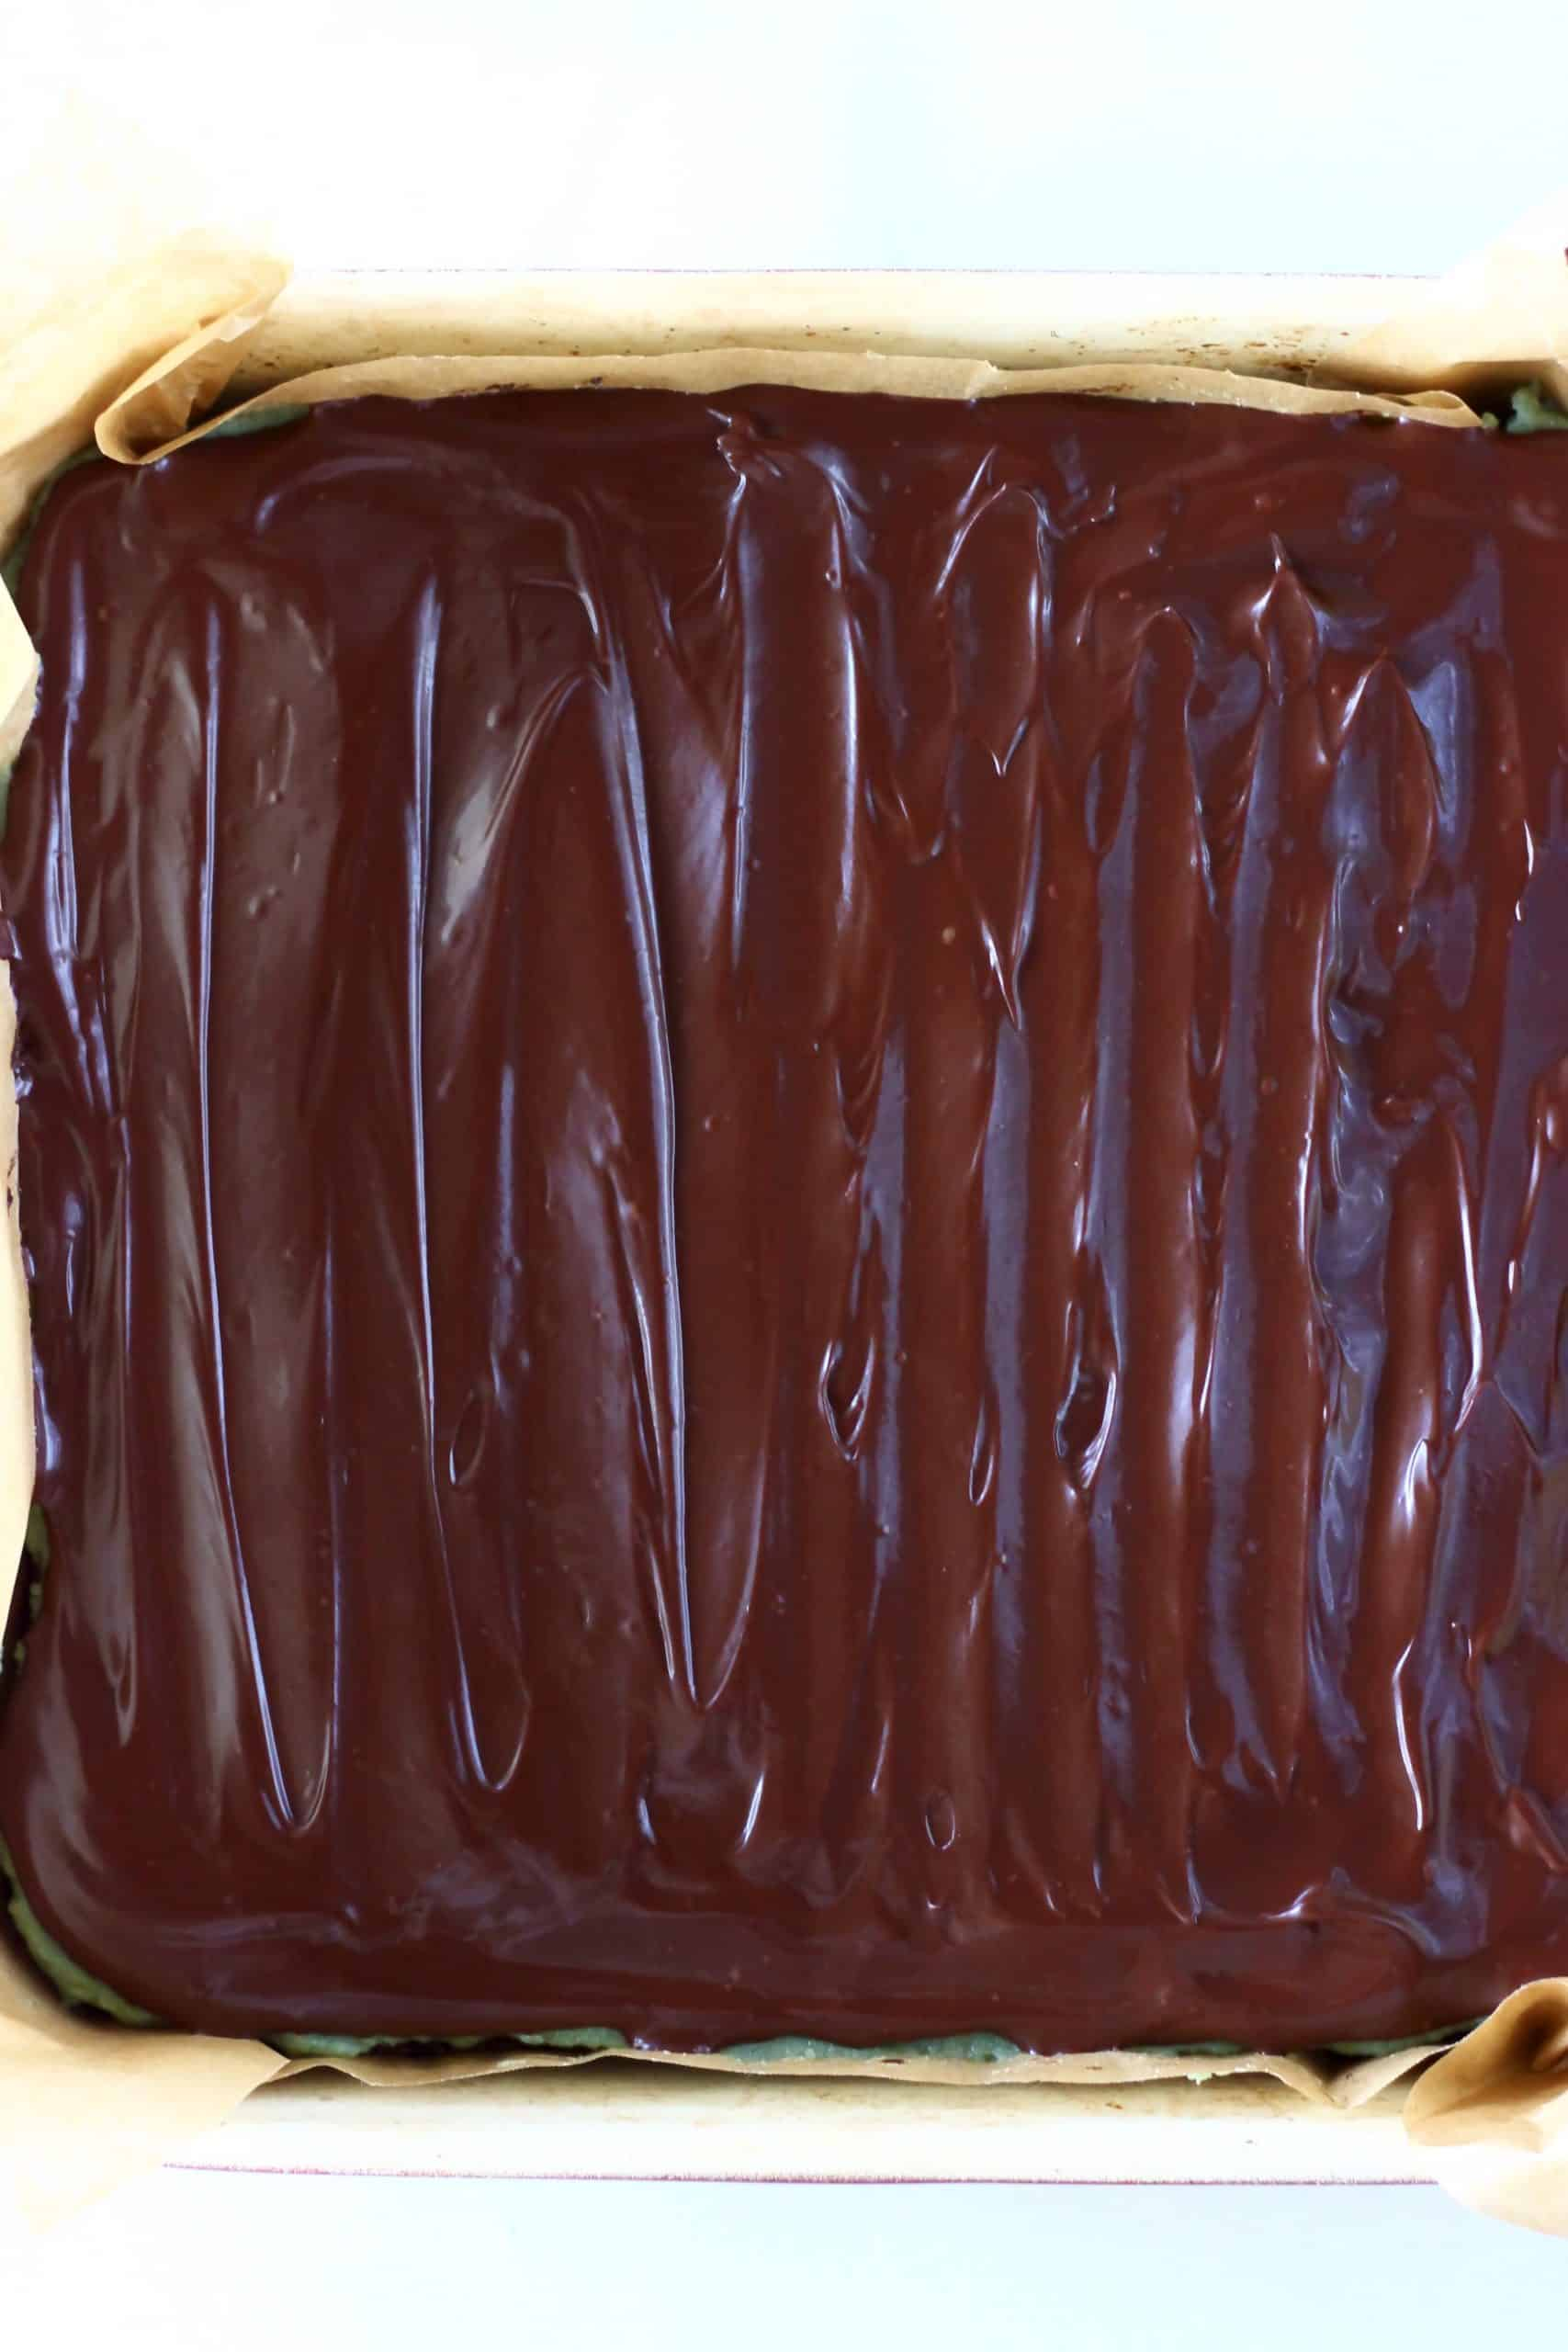 Vegan chocolate ganache spread over vegan peppermint brownies in a square baking tin lined with baking paper